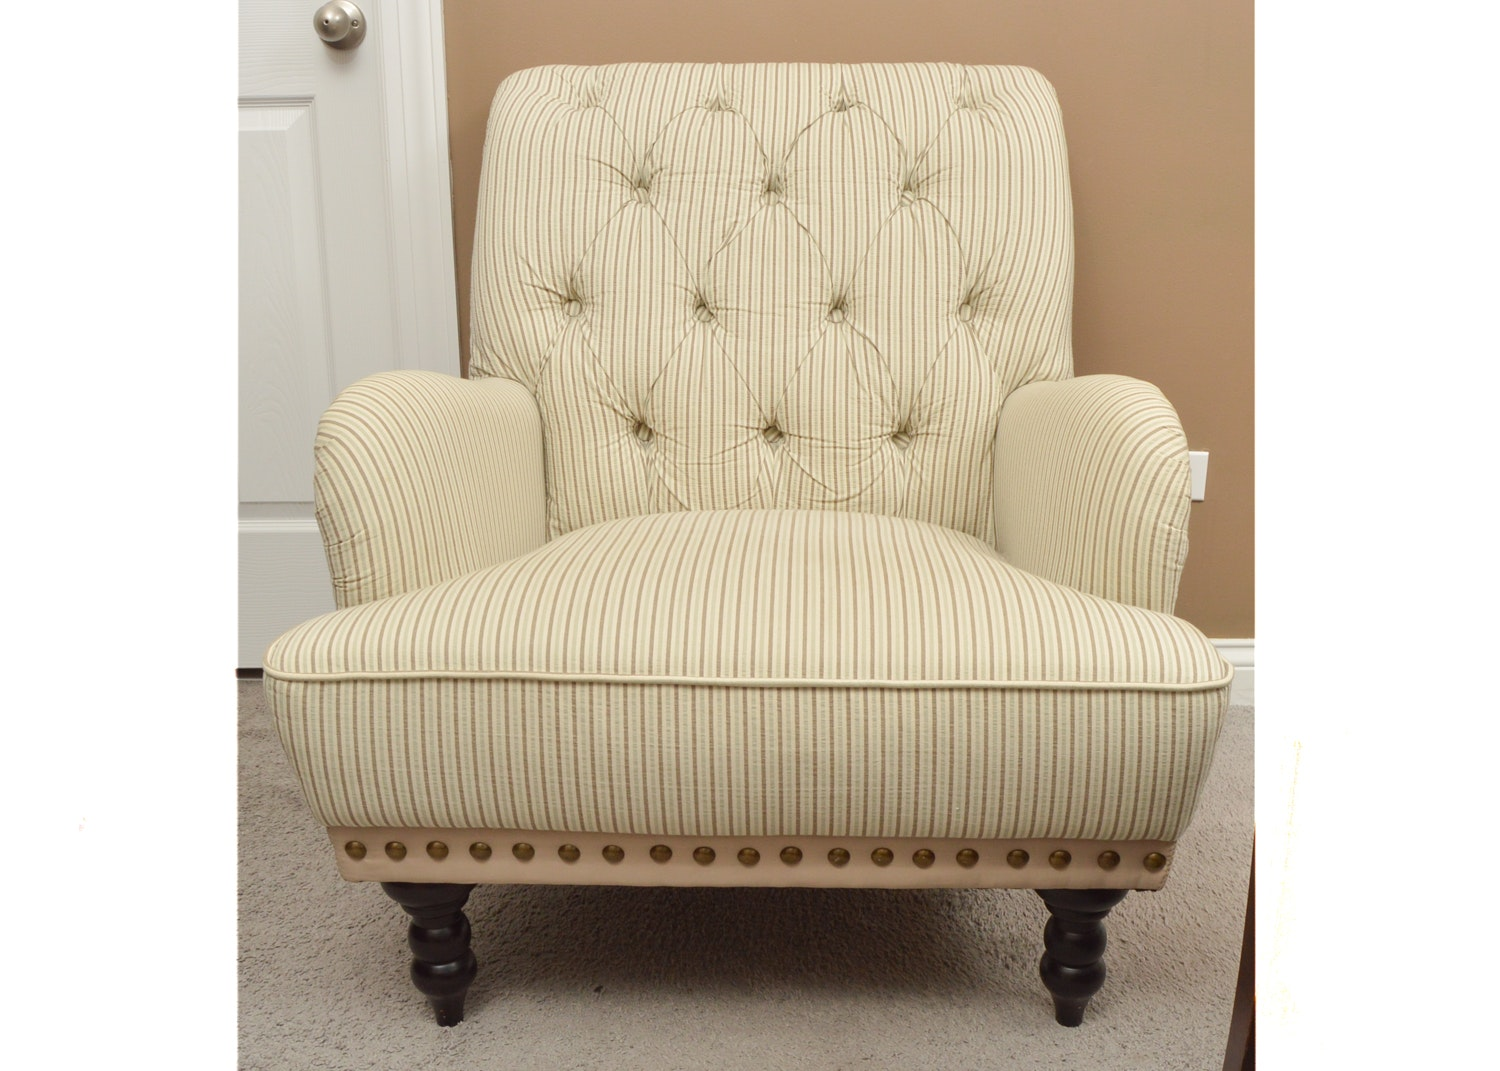 Pier 1 Imports Striped Upholstered Armchair